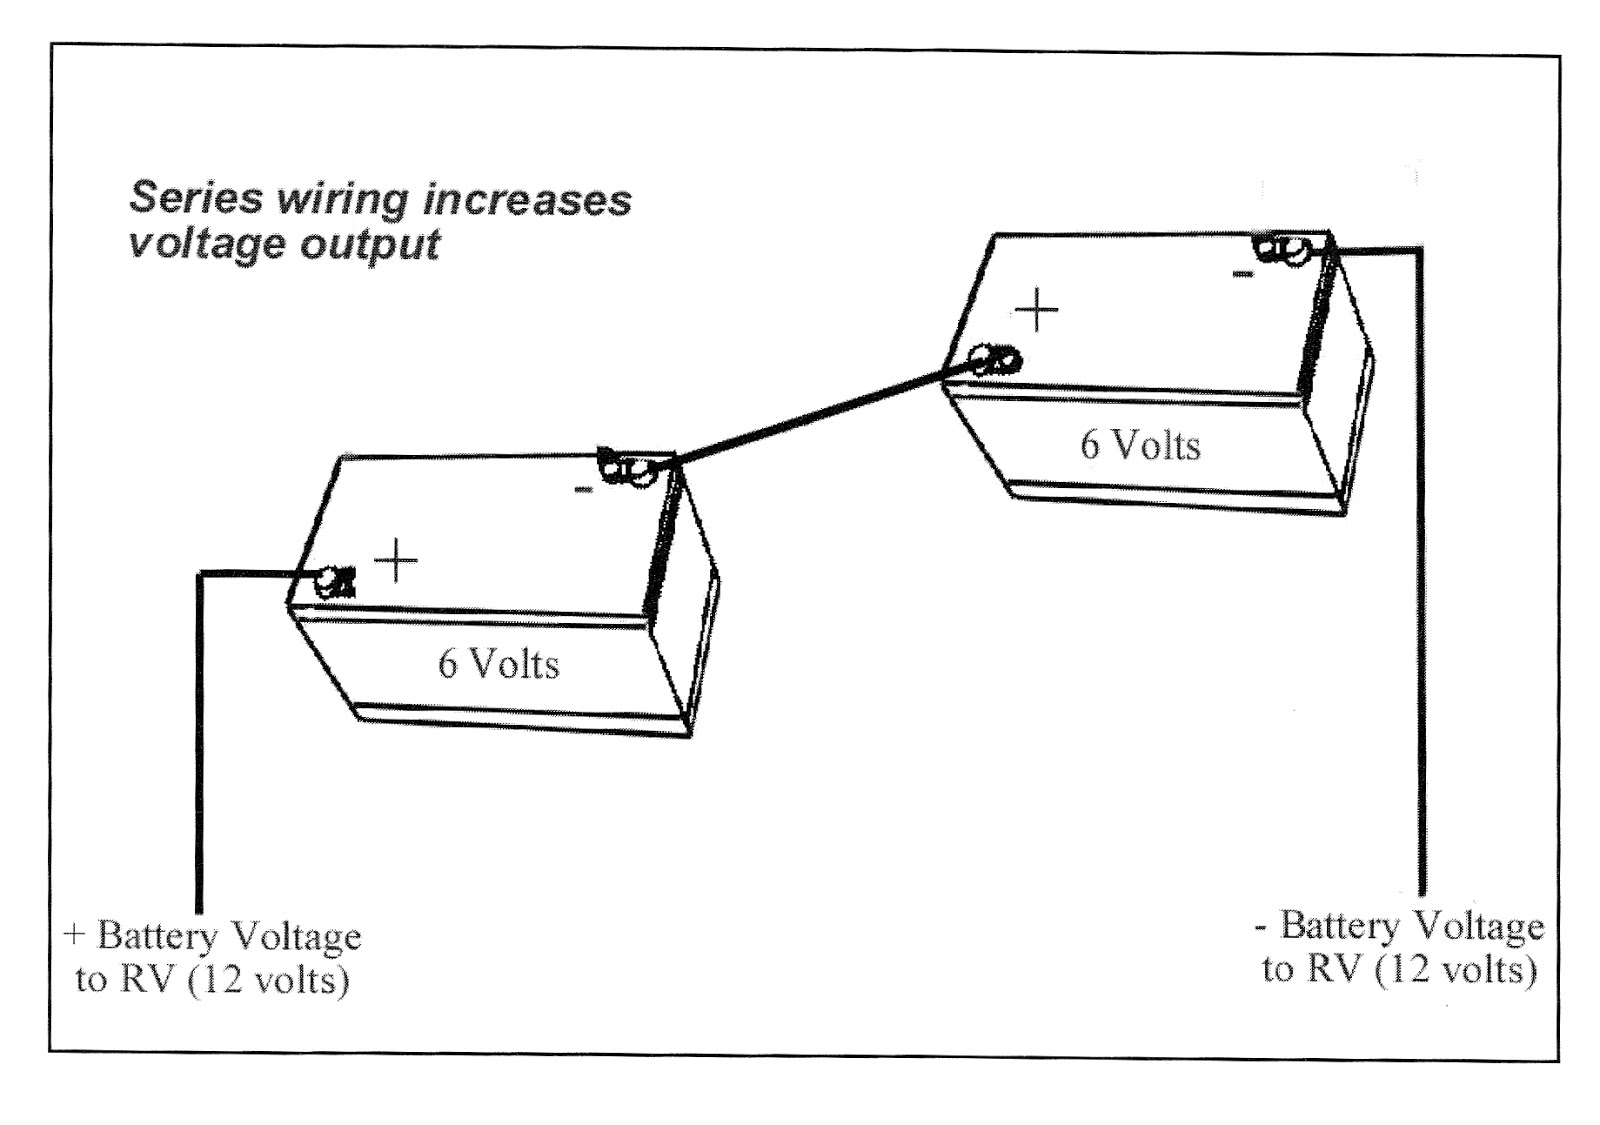 Series Wiring Diagrams : I have a question regarding minn kota fortrex xxxxx